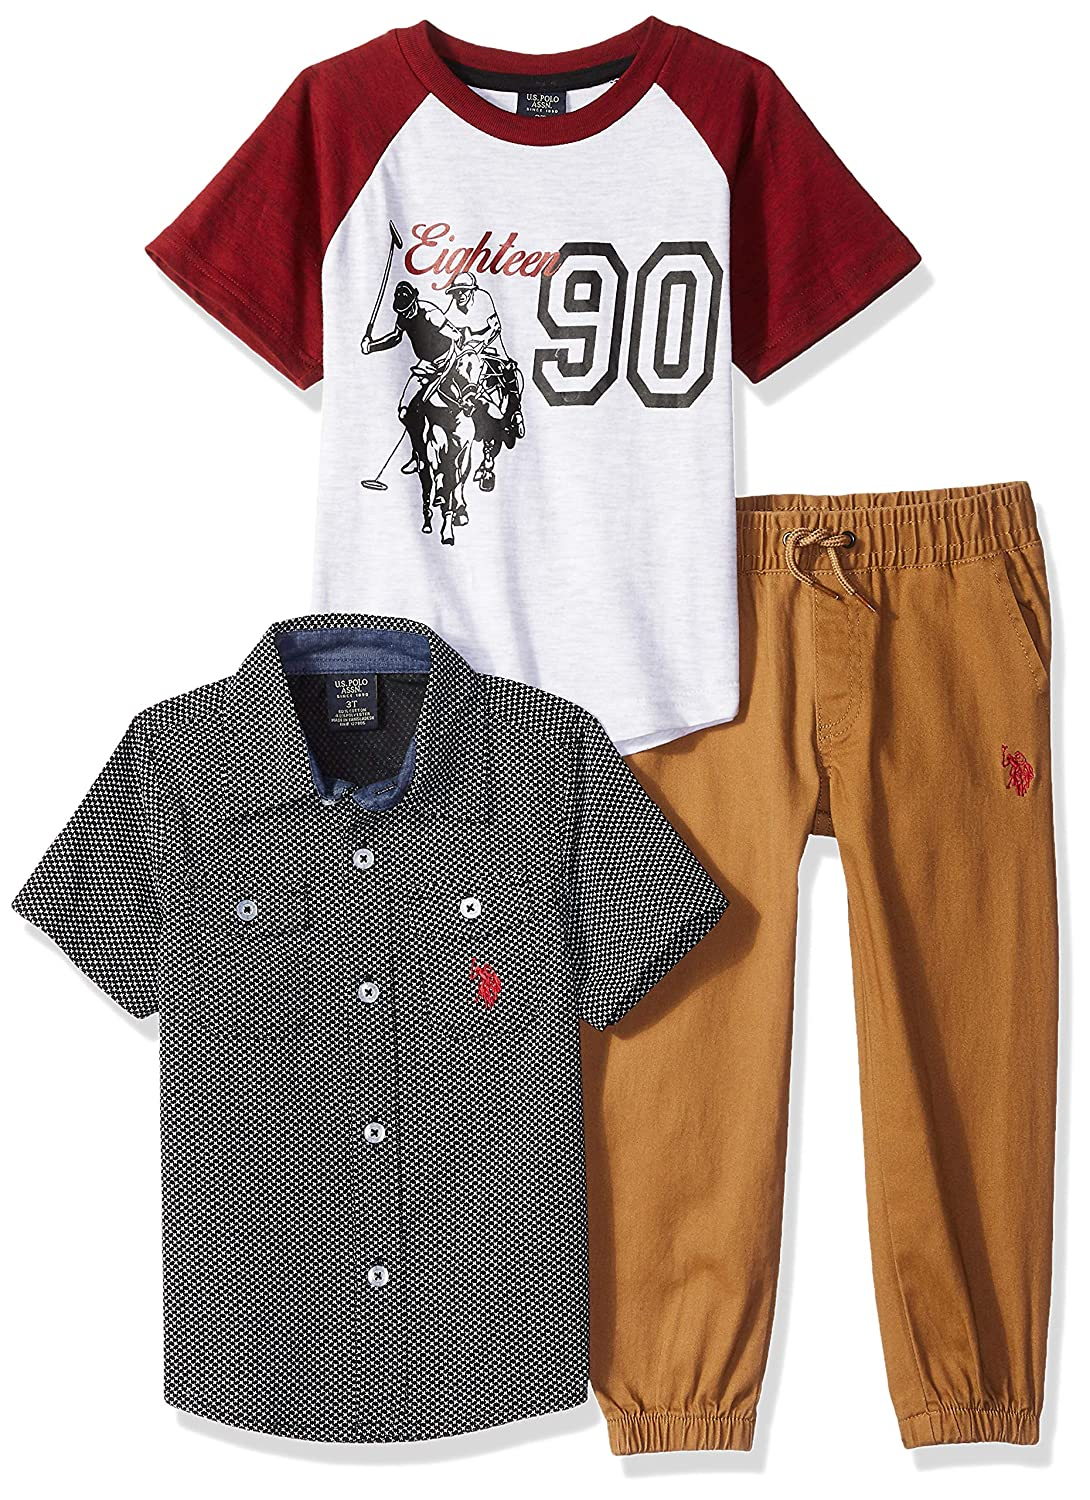 U.S. Polo Assn. Boys' T-Shirt, Sport Shirt and Pant Set